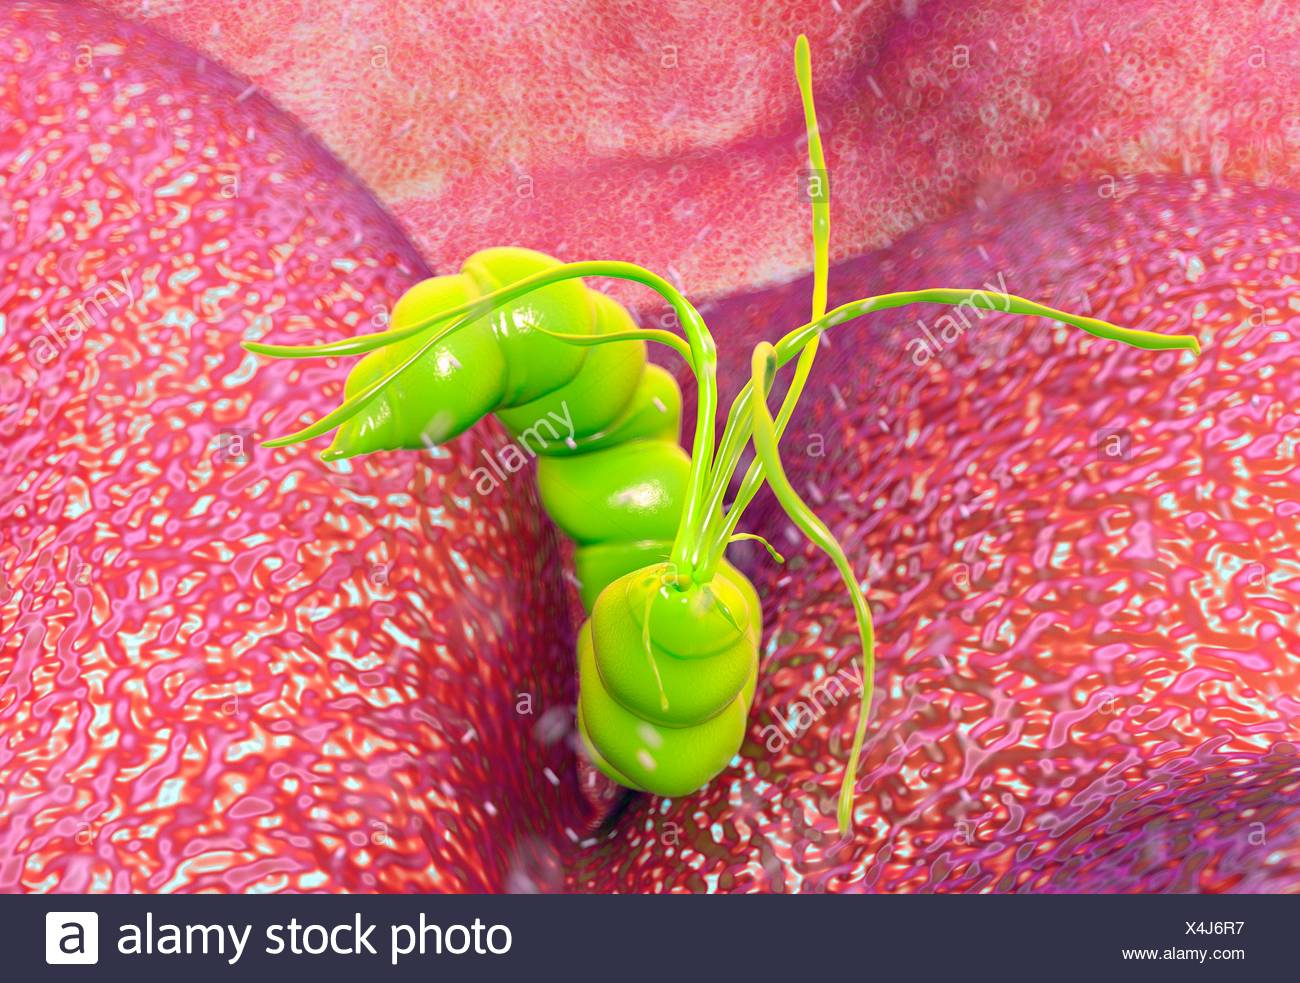 Helicobacter Pylori Bacteria Stock Photo Alamy